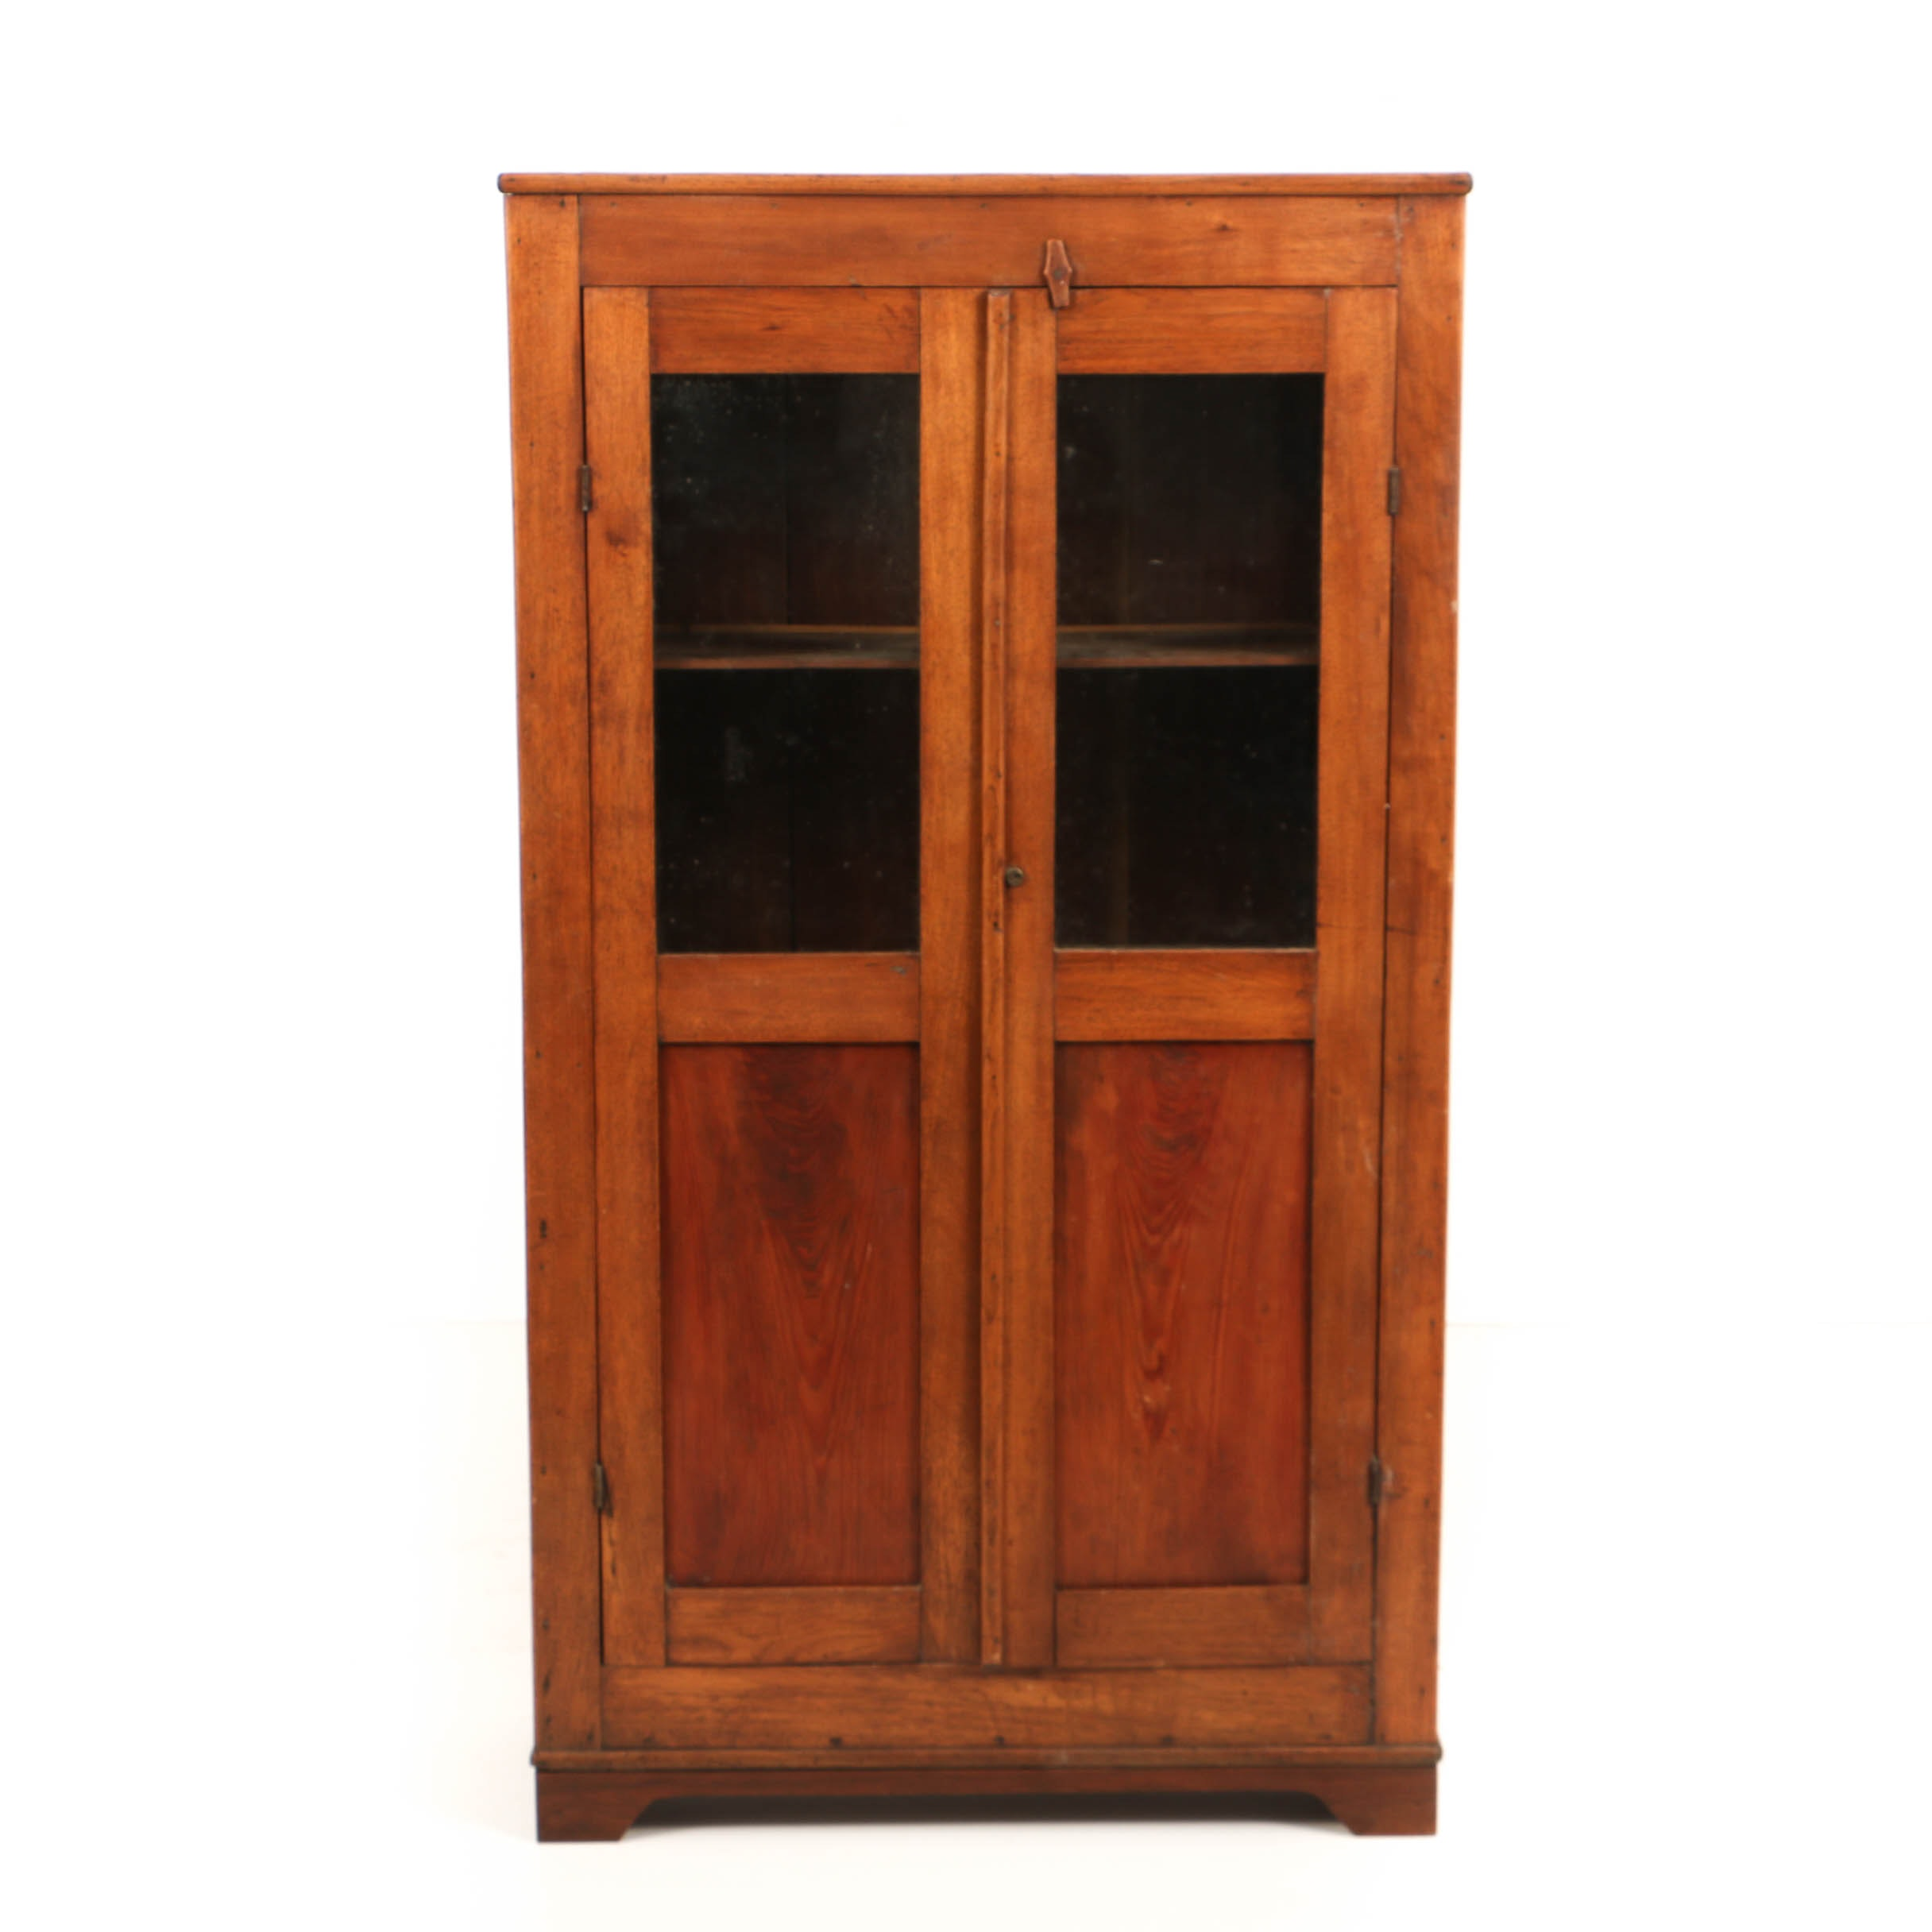 Antique Walnut and Pine Glazed-Door Cupboard